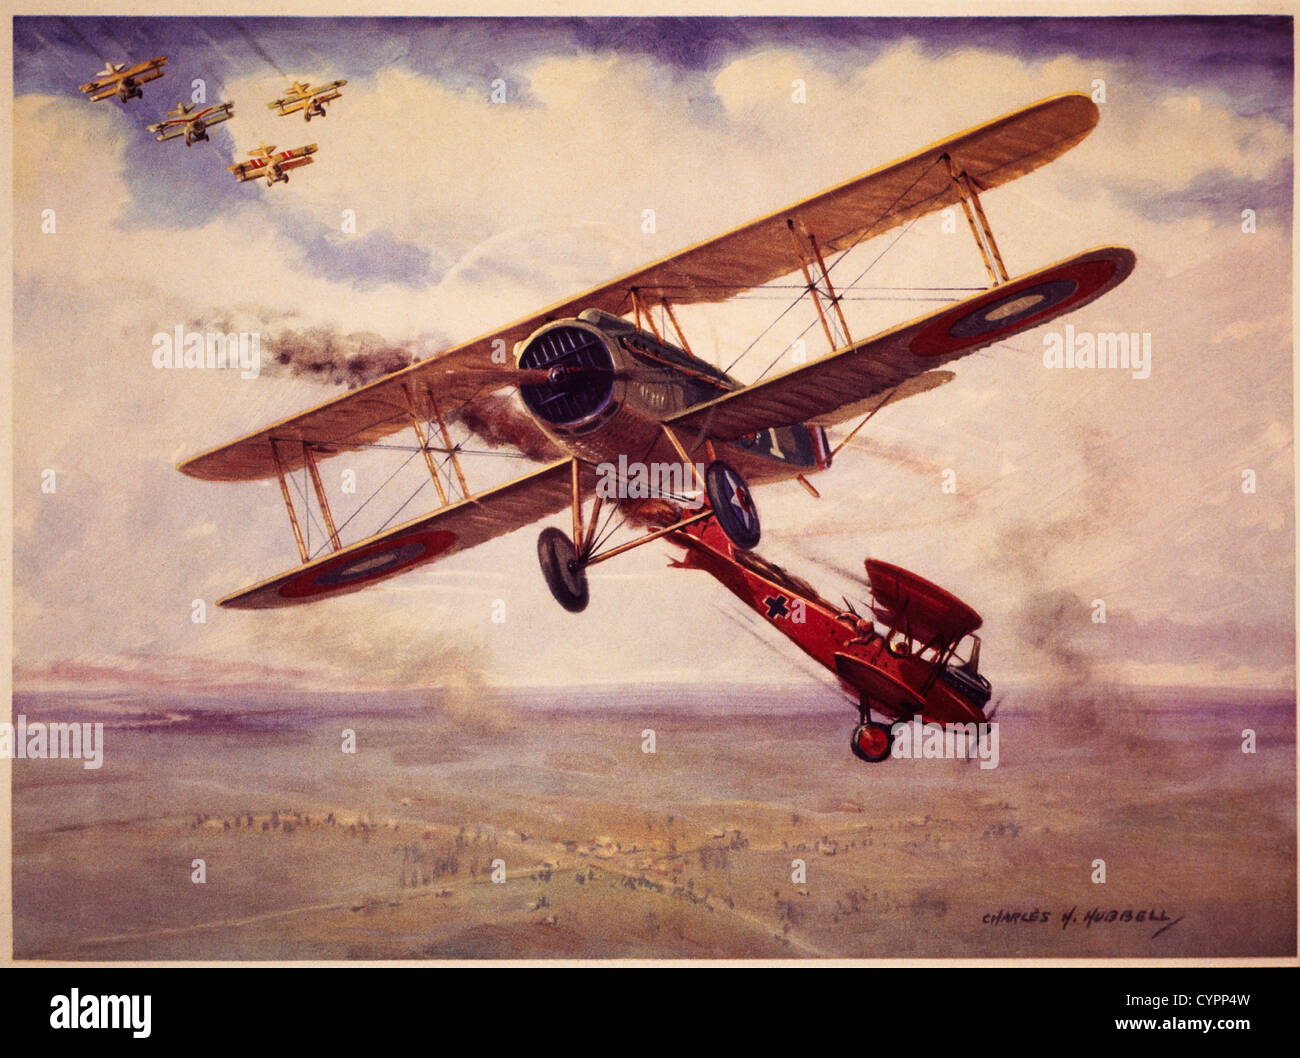 research paper on eddie rickenbacker Research paper on eddie rickenbacker avro arrow history essay in most cases, if you are travelling to zimbabwe, even for just a few days, you will need to get the.